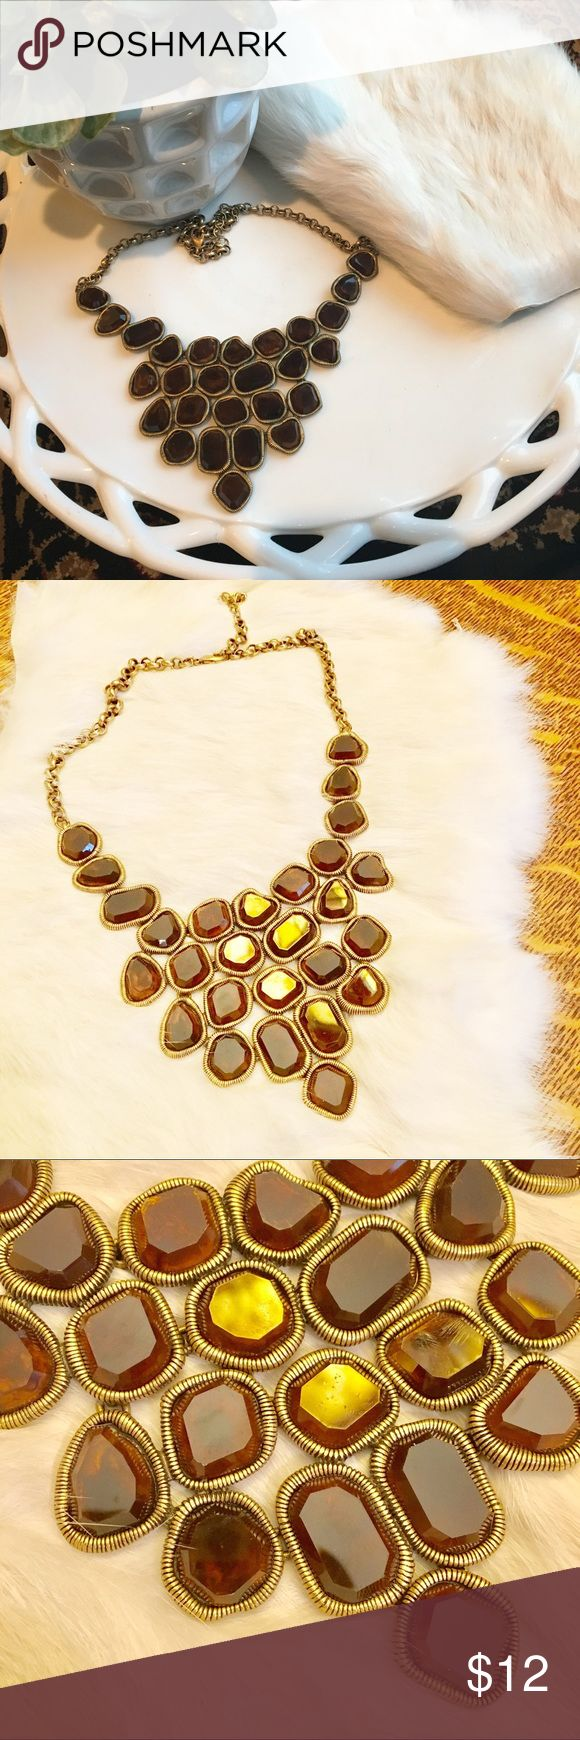 "Women's 22"" Brown and Gold Statement Necklace Women's 22"" Brown and Gold Statement Necklace. Excellent condition. Jewelry Necklaces"